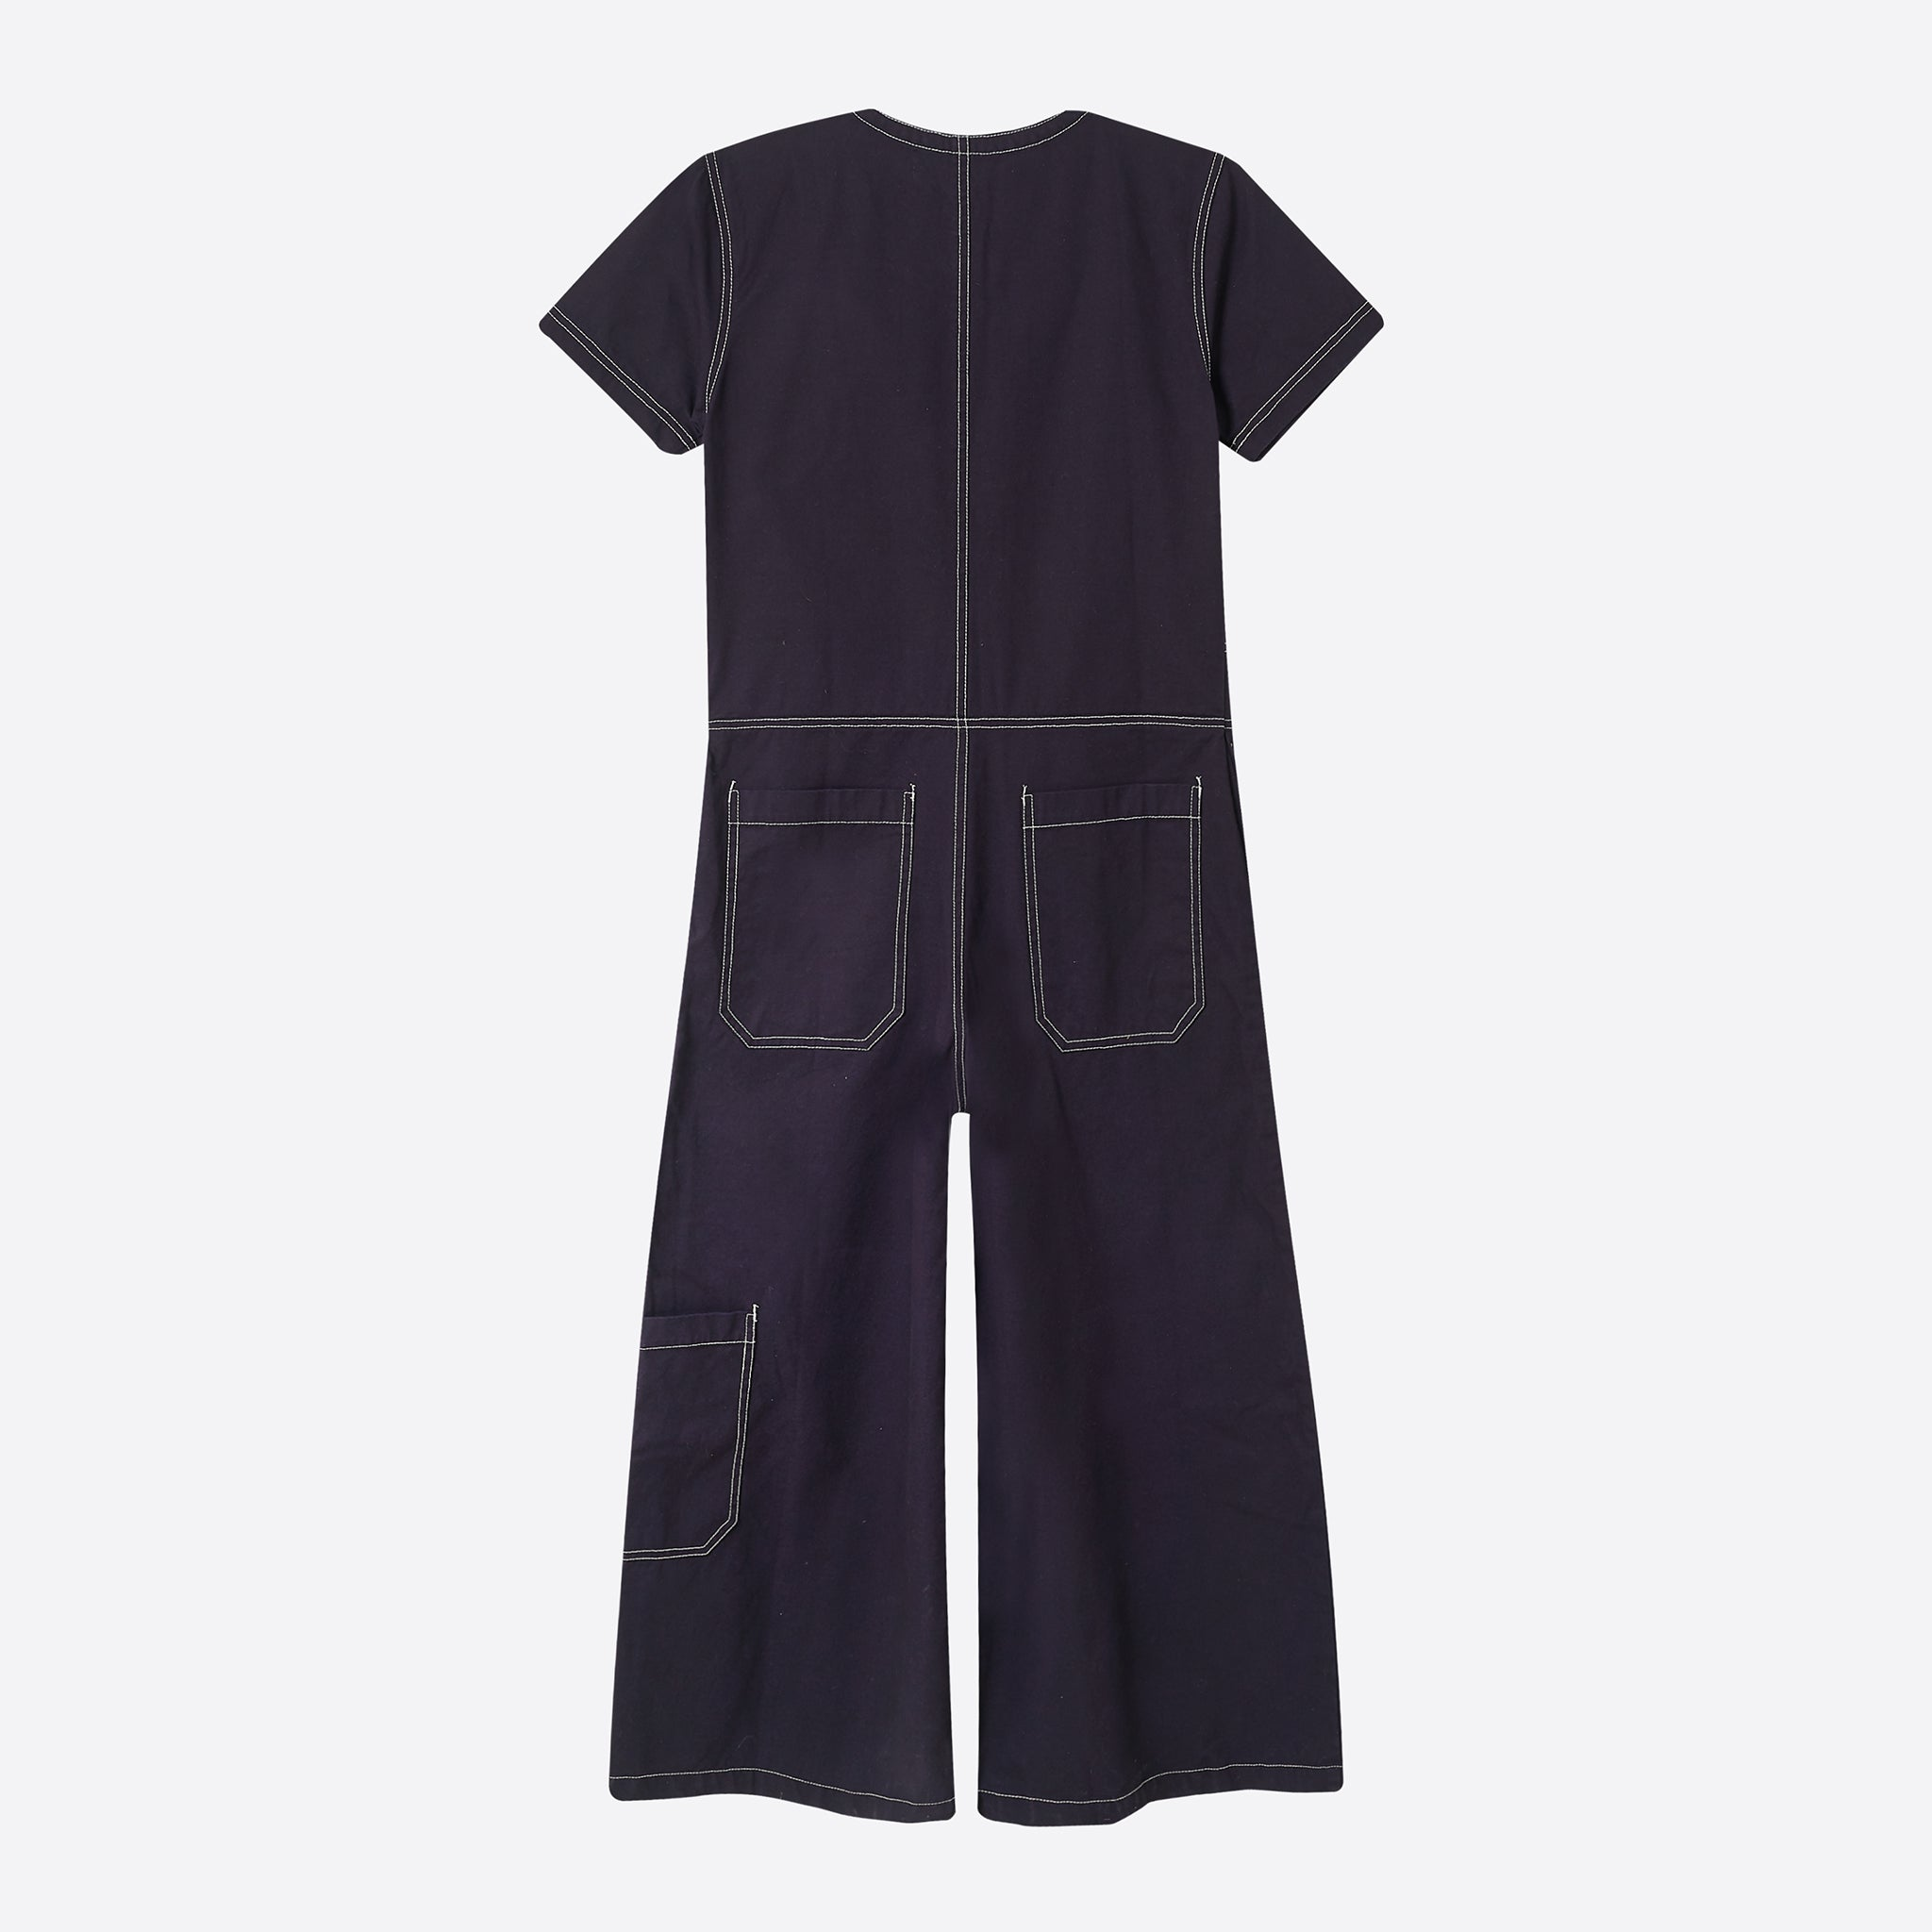 LF Markey Felix Boilersuit in Navy